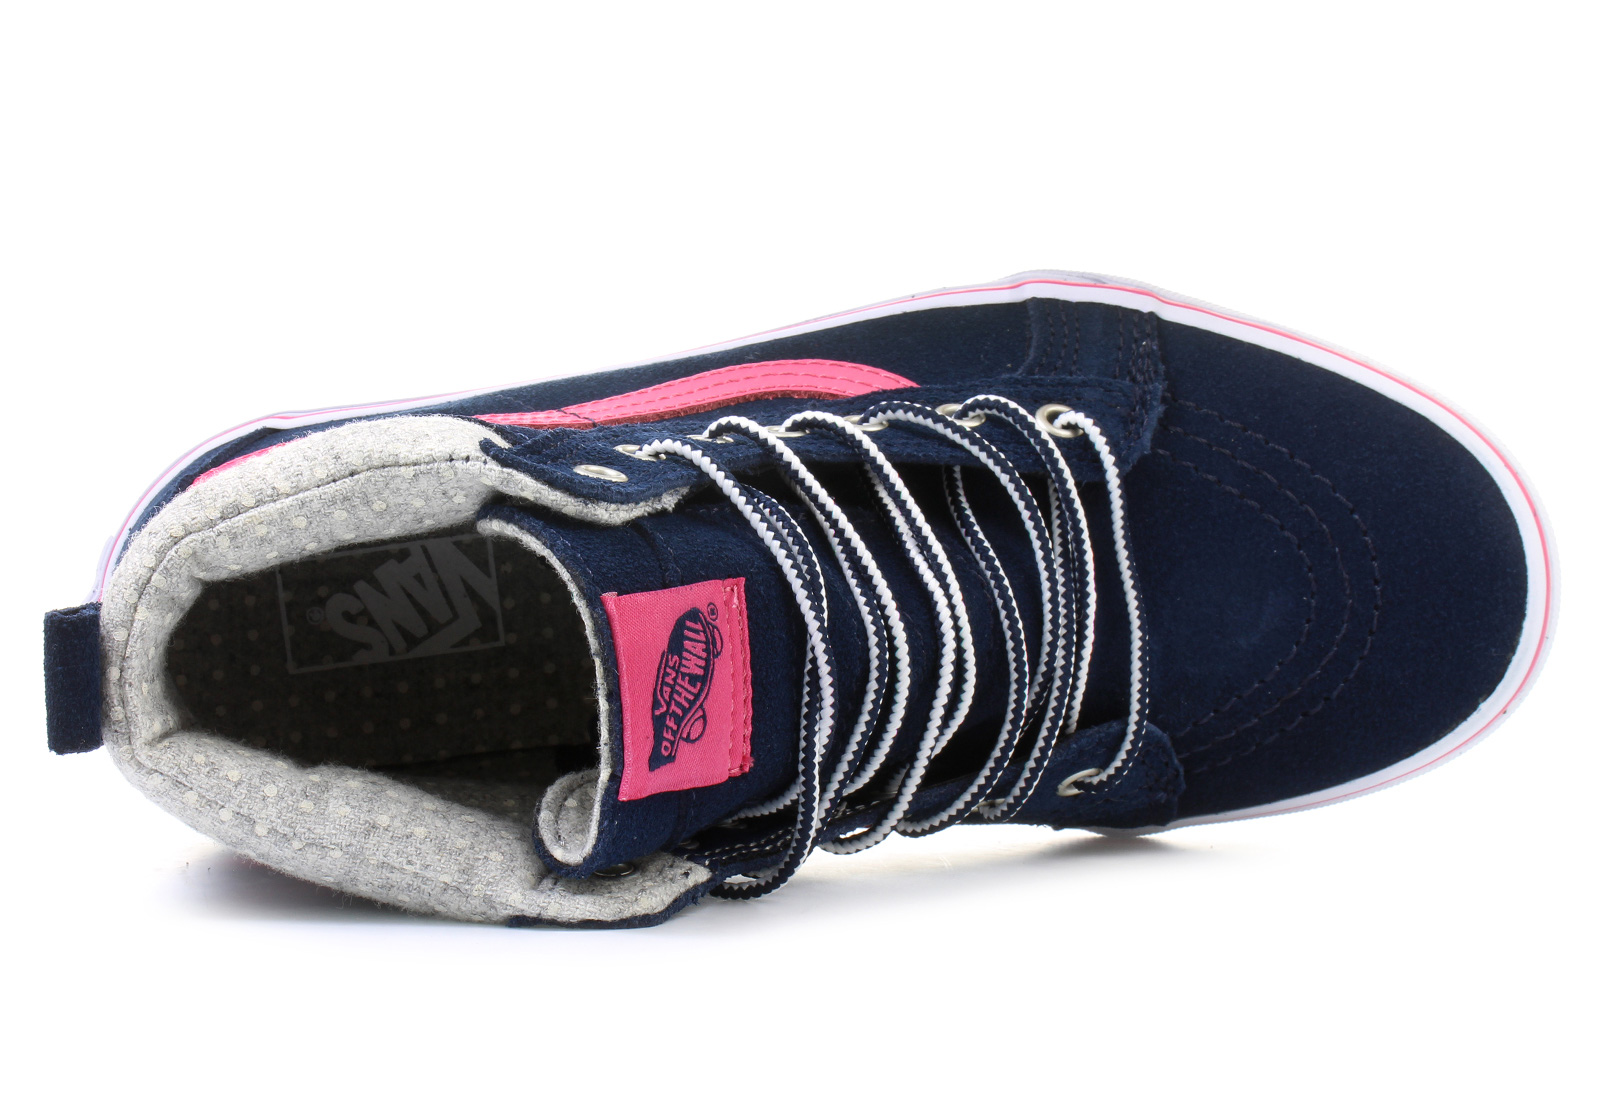 f9ef52e12d Vans Sneakers - Sk8-hi Mte K - VA2XSNK5M - Online shop for sneakers ...